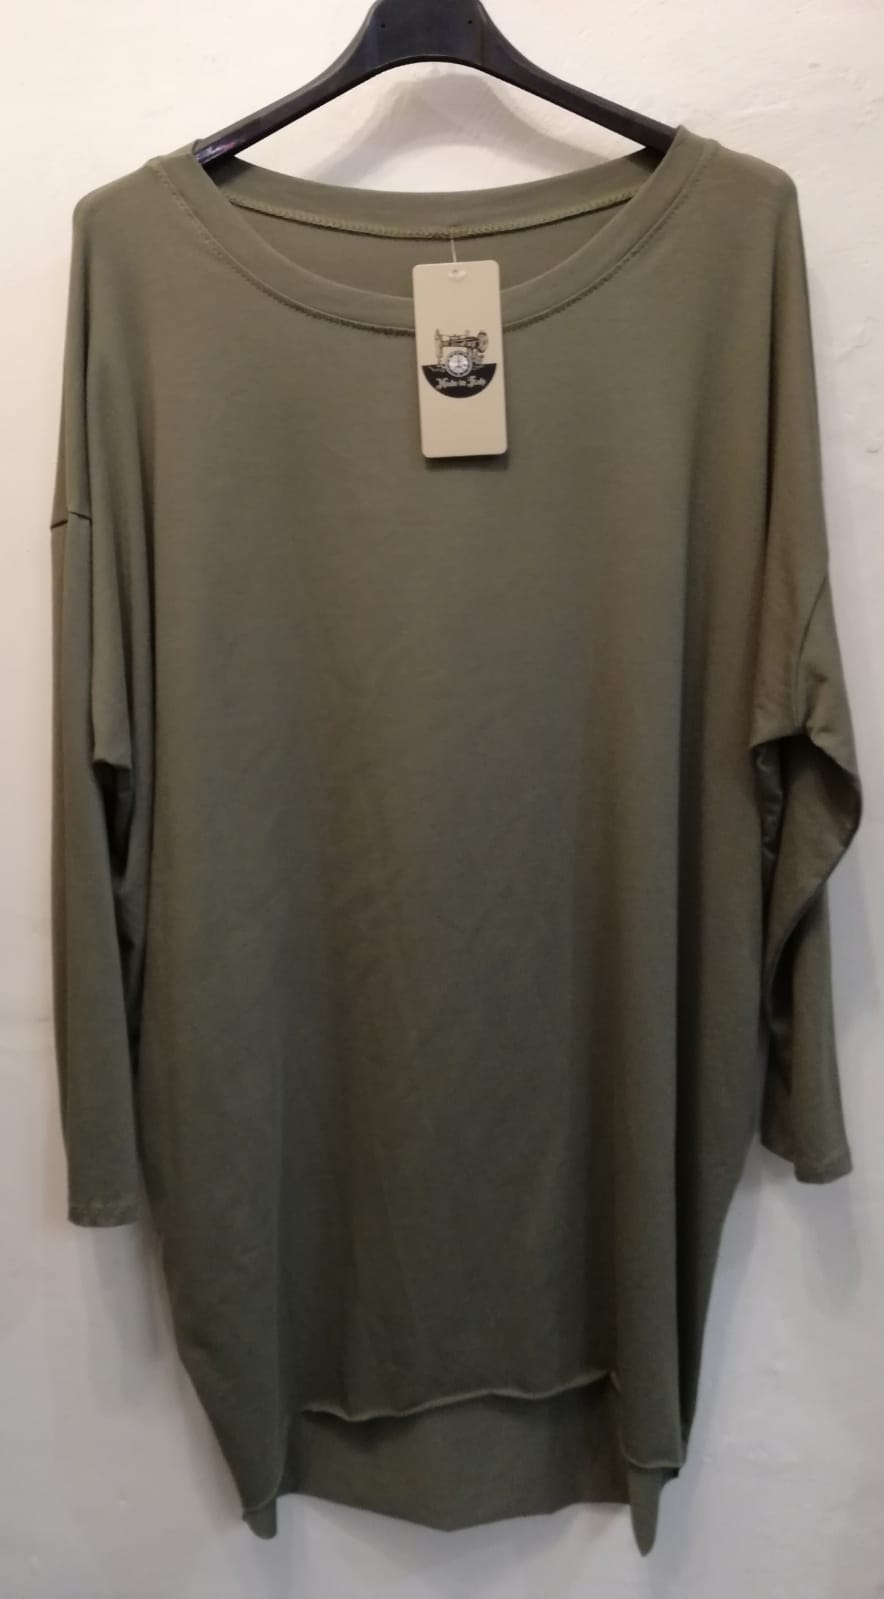 Long Sleeve Slouch T Top - one size 12/20 £20 SALE PRICE £10 NO RETURN